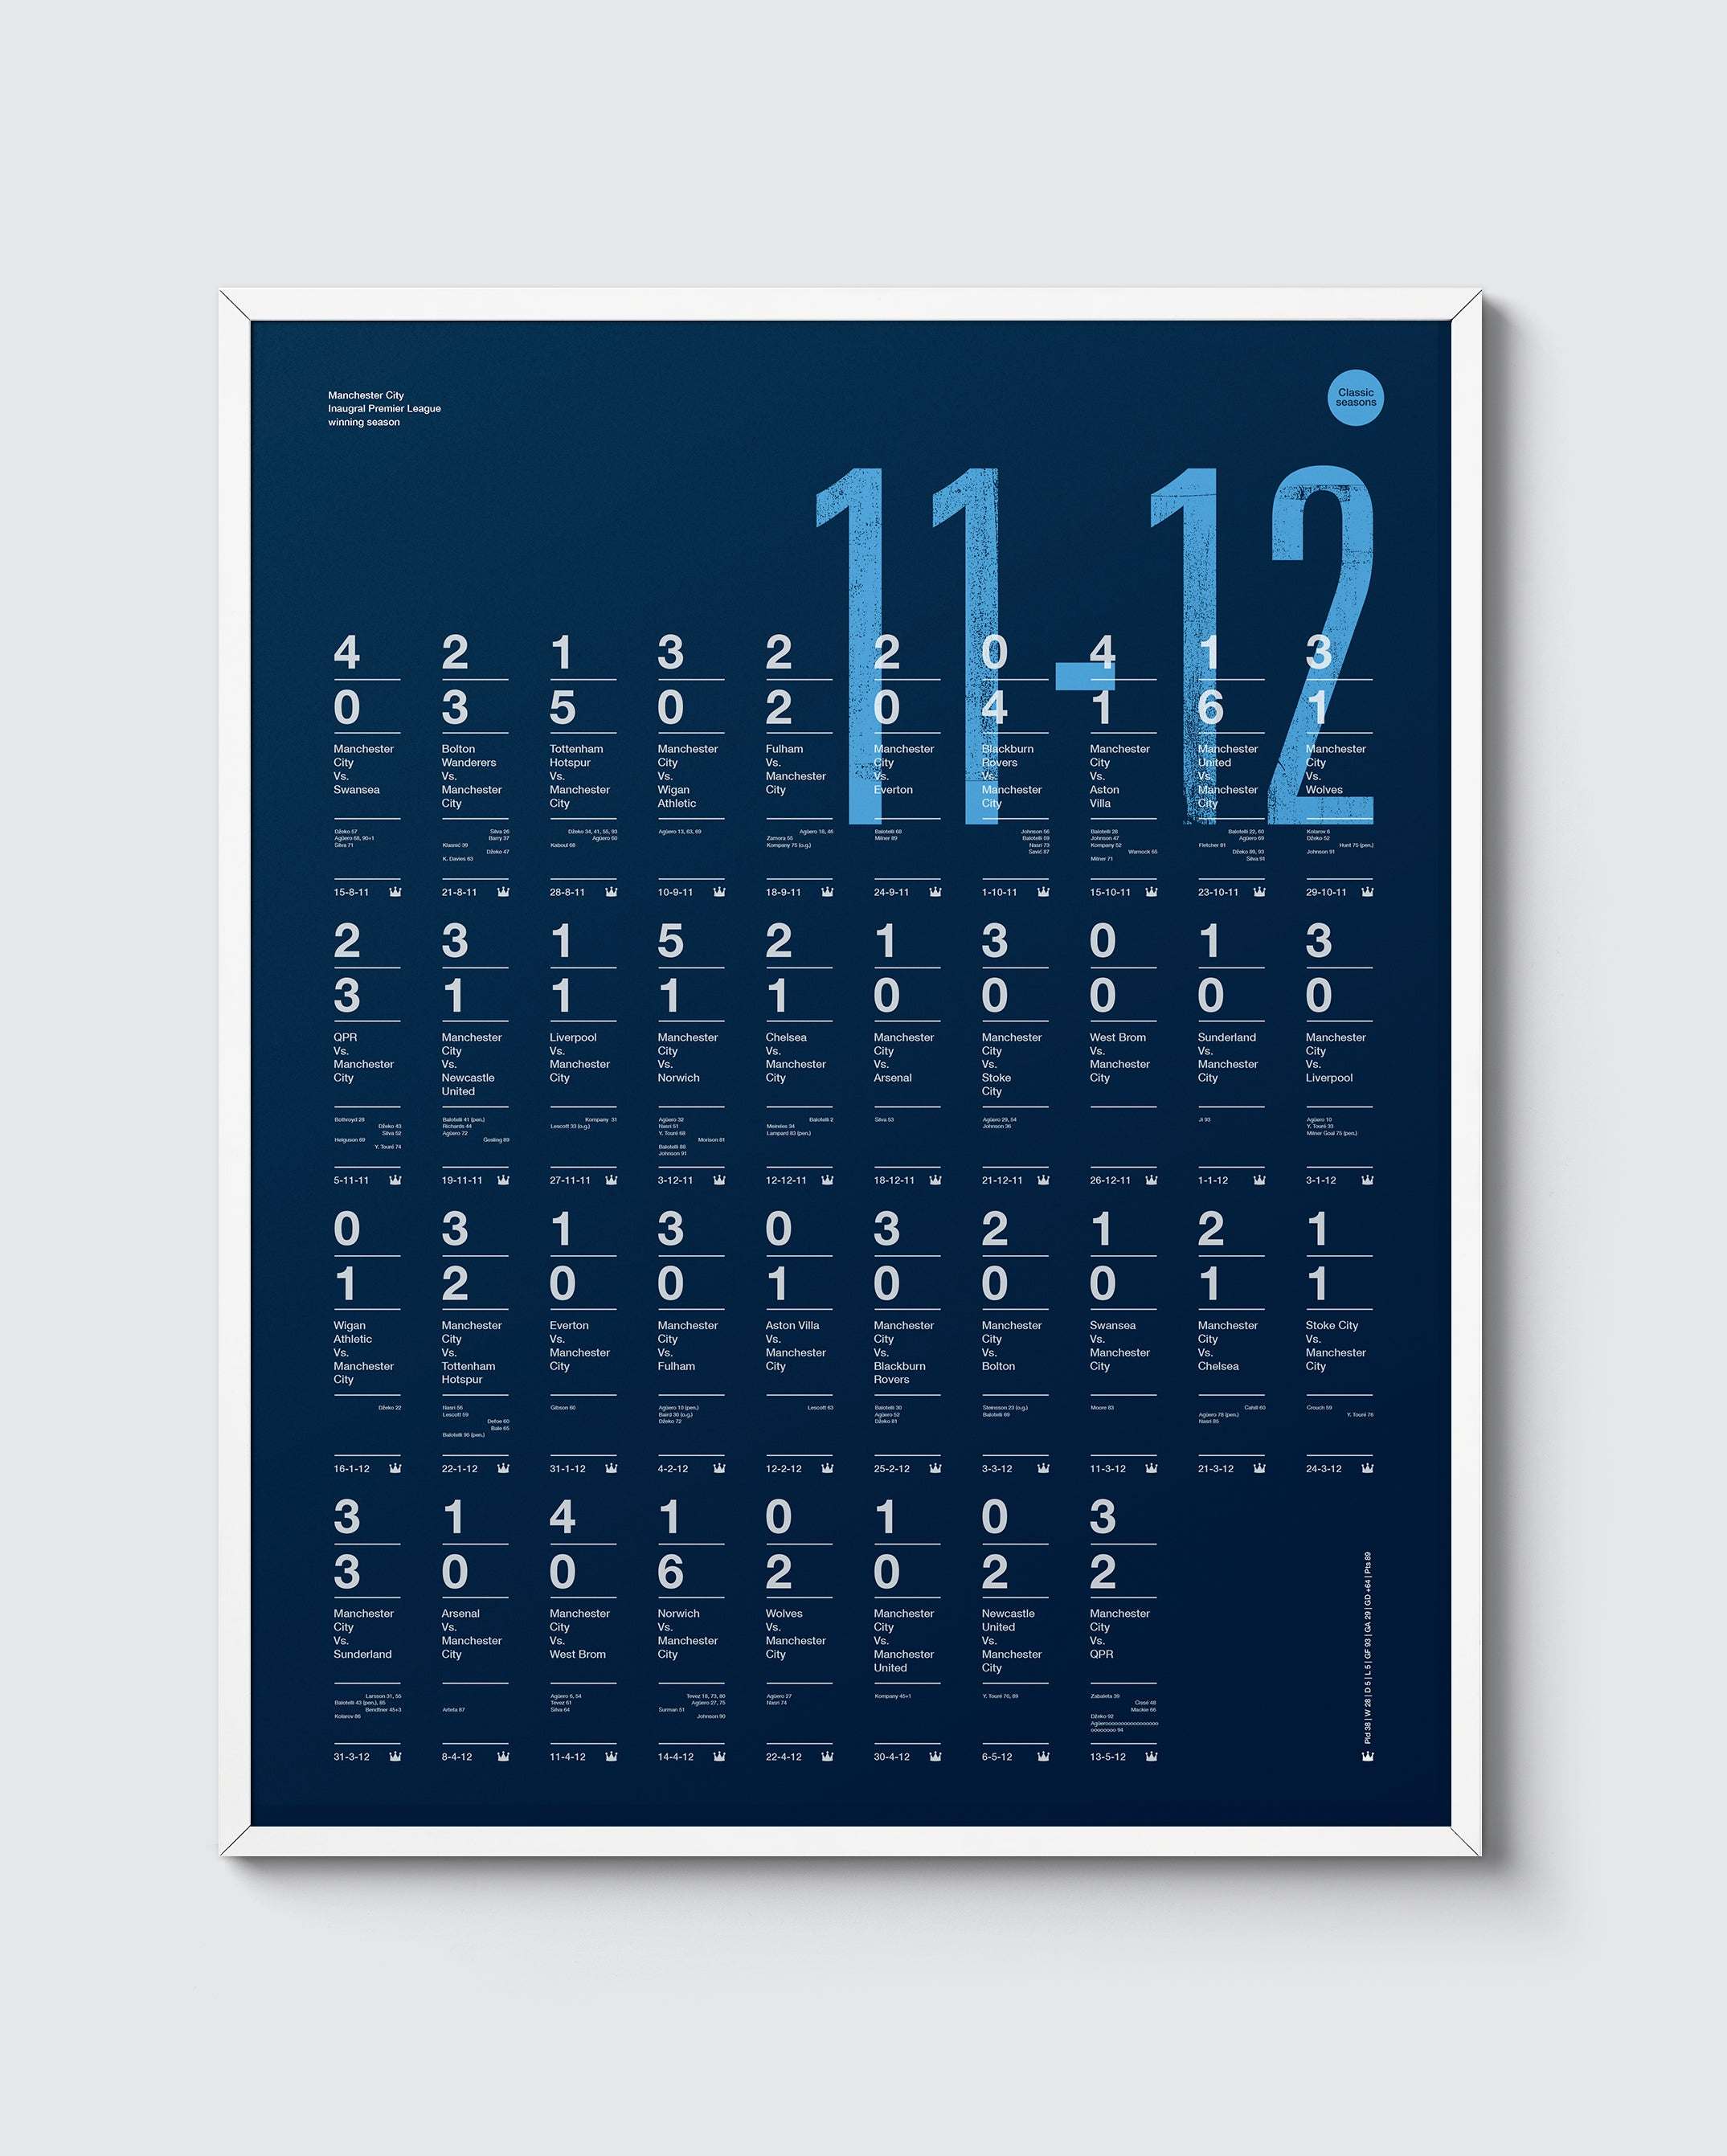 Classic season print  – Man City 11/12